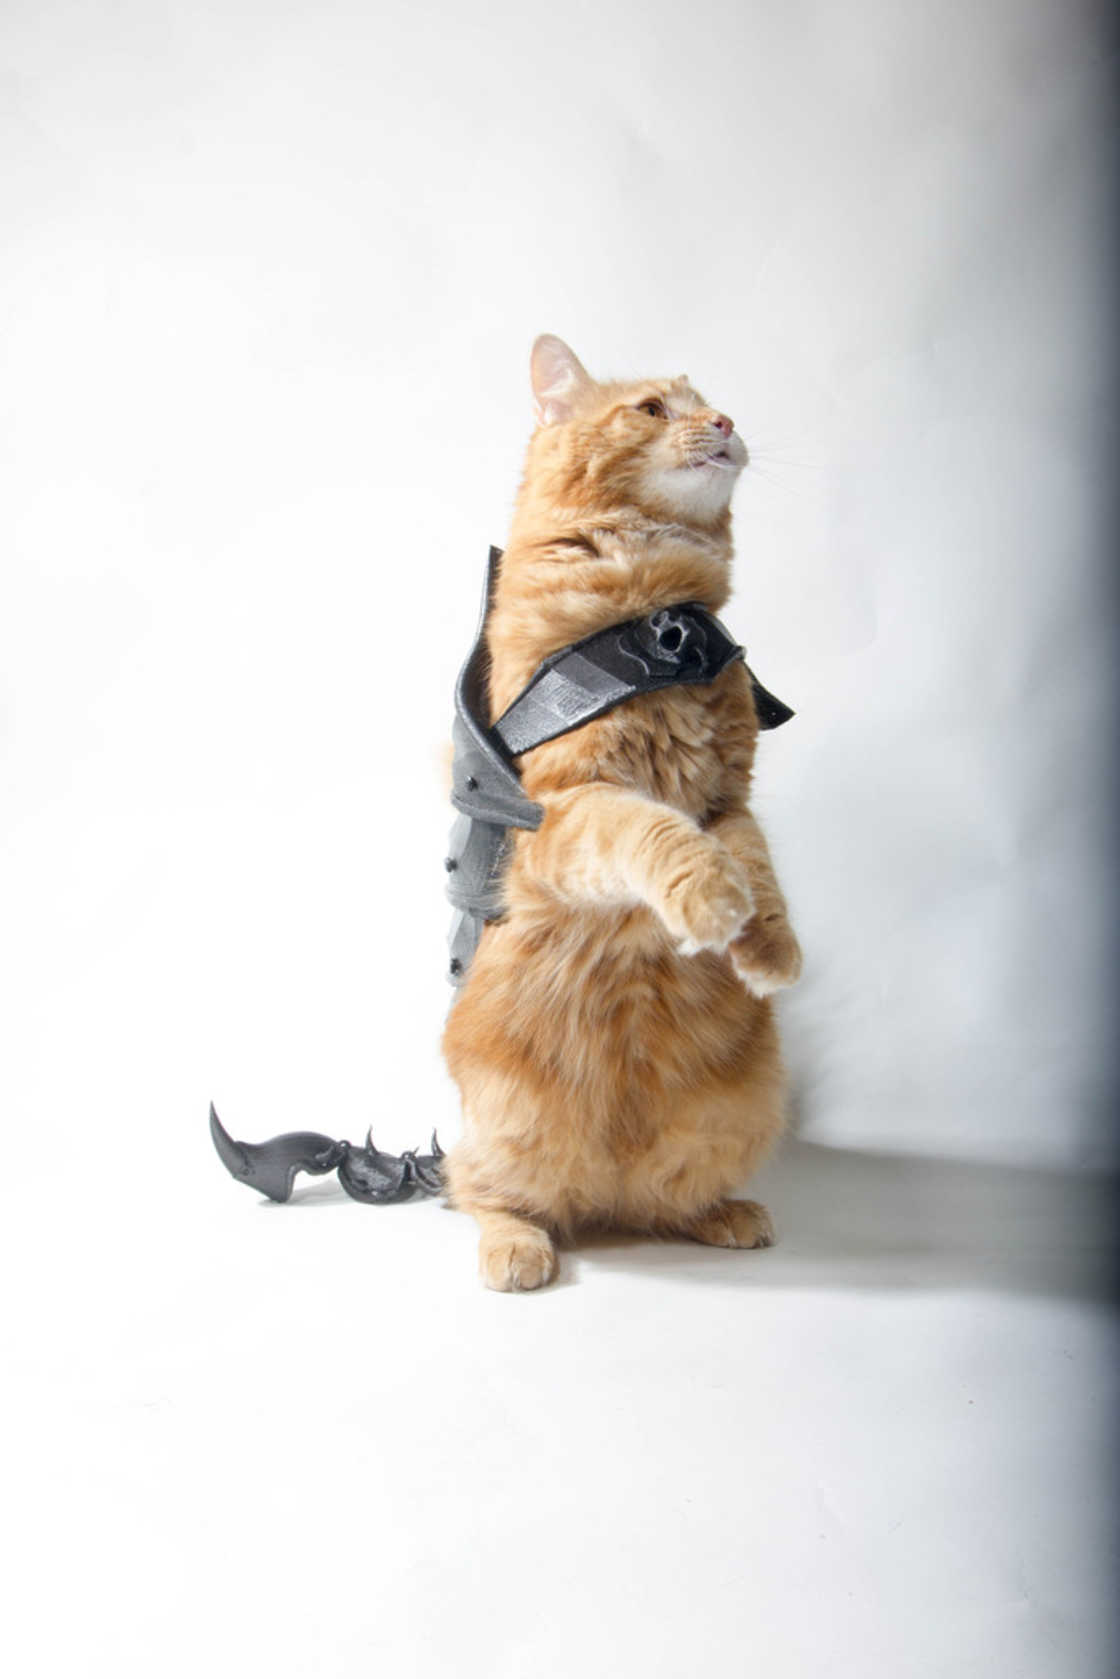 armure-pour-chat-13